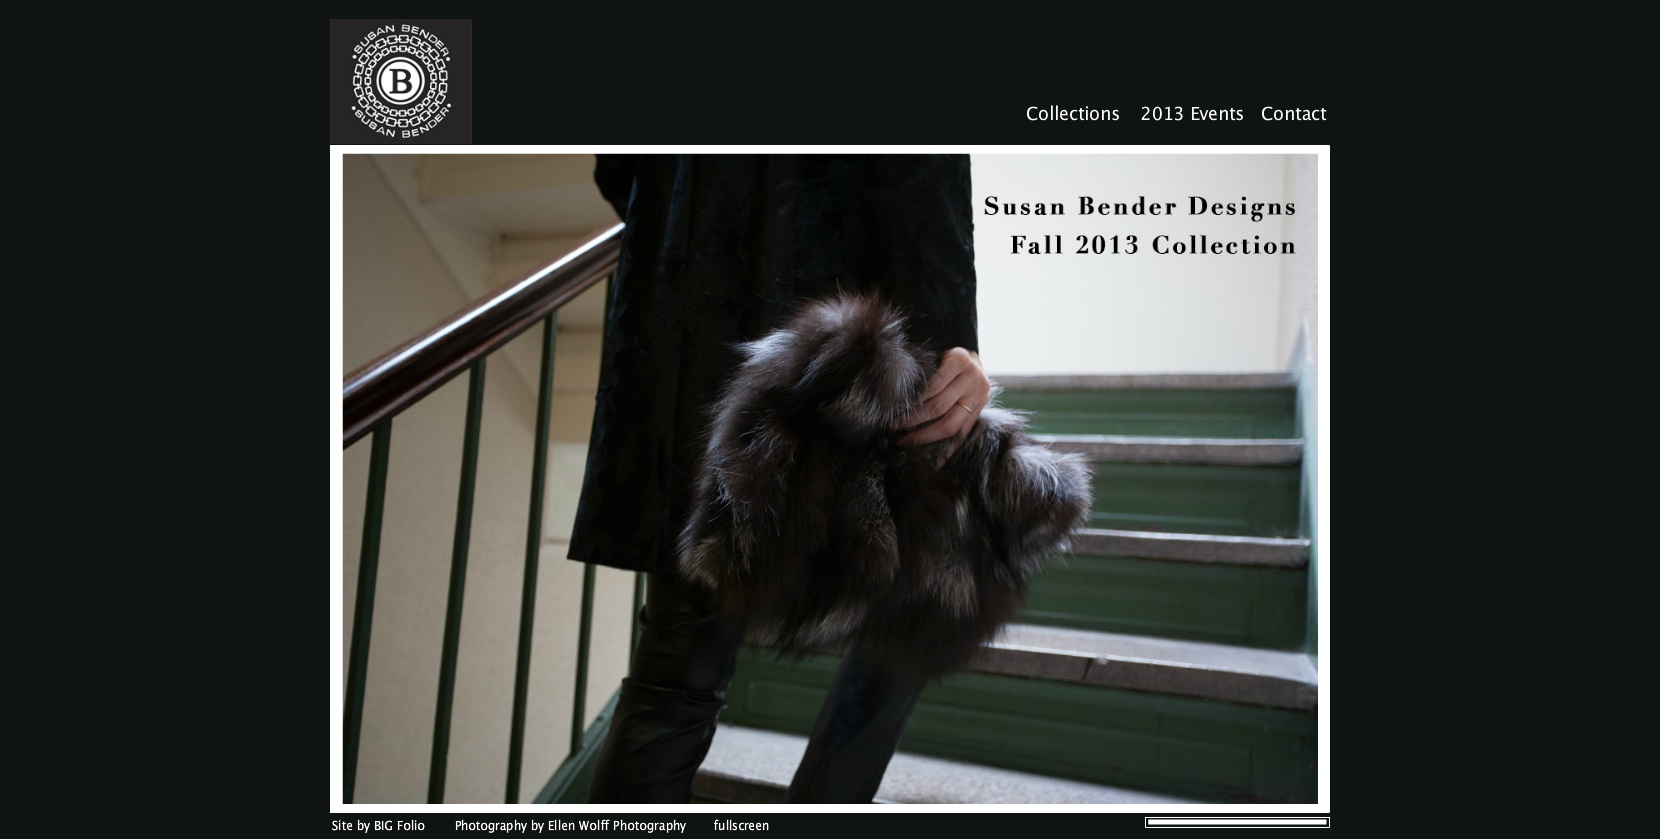 susan bender designs website landing page